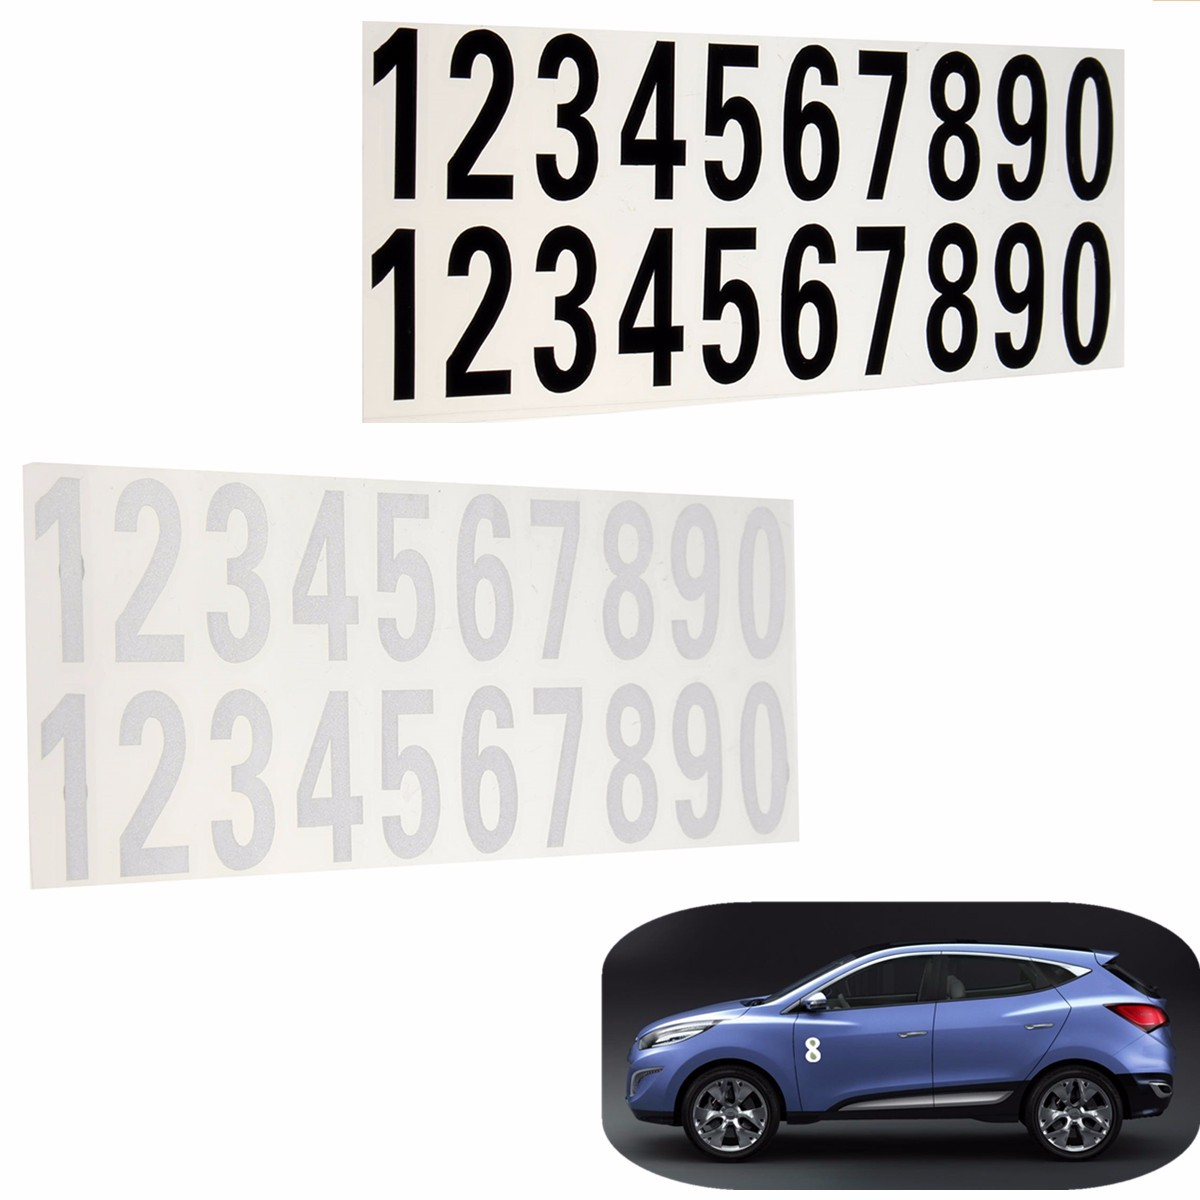 House Door Street Address Mailbox Number Digits Numeral Car Room Gate Vinyl Decal Reflective Stickers White Black(China)